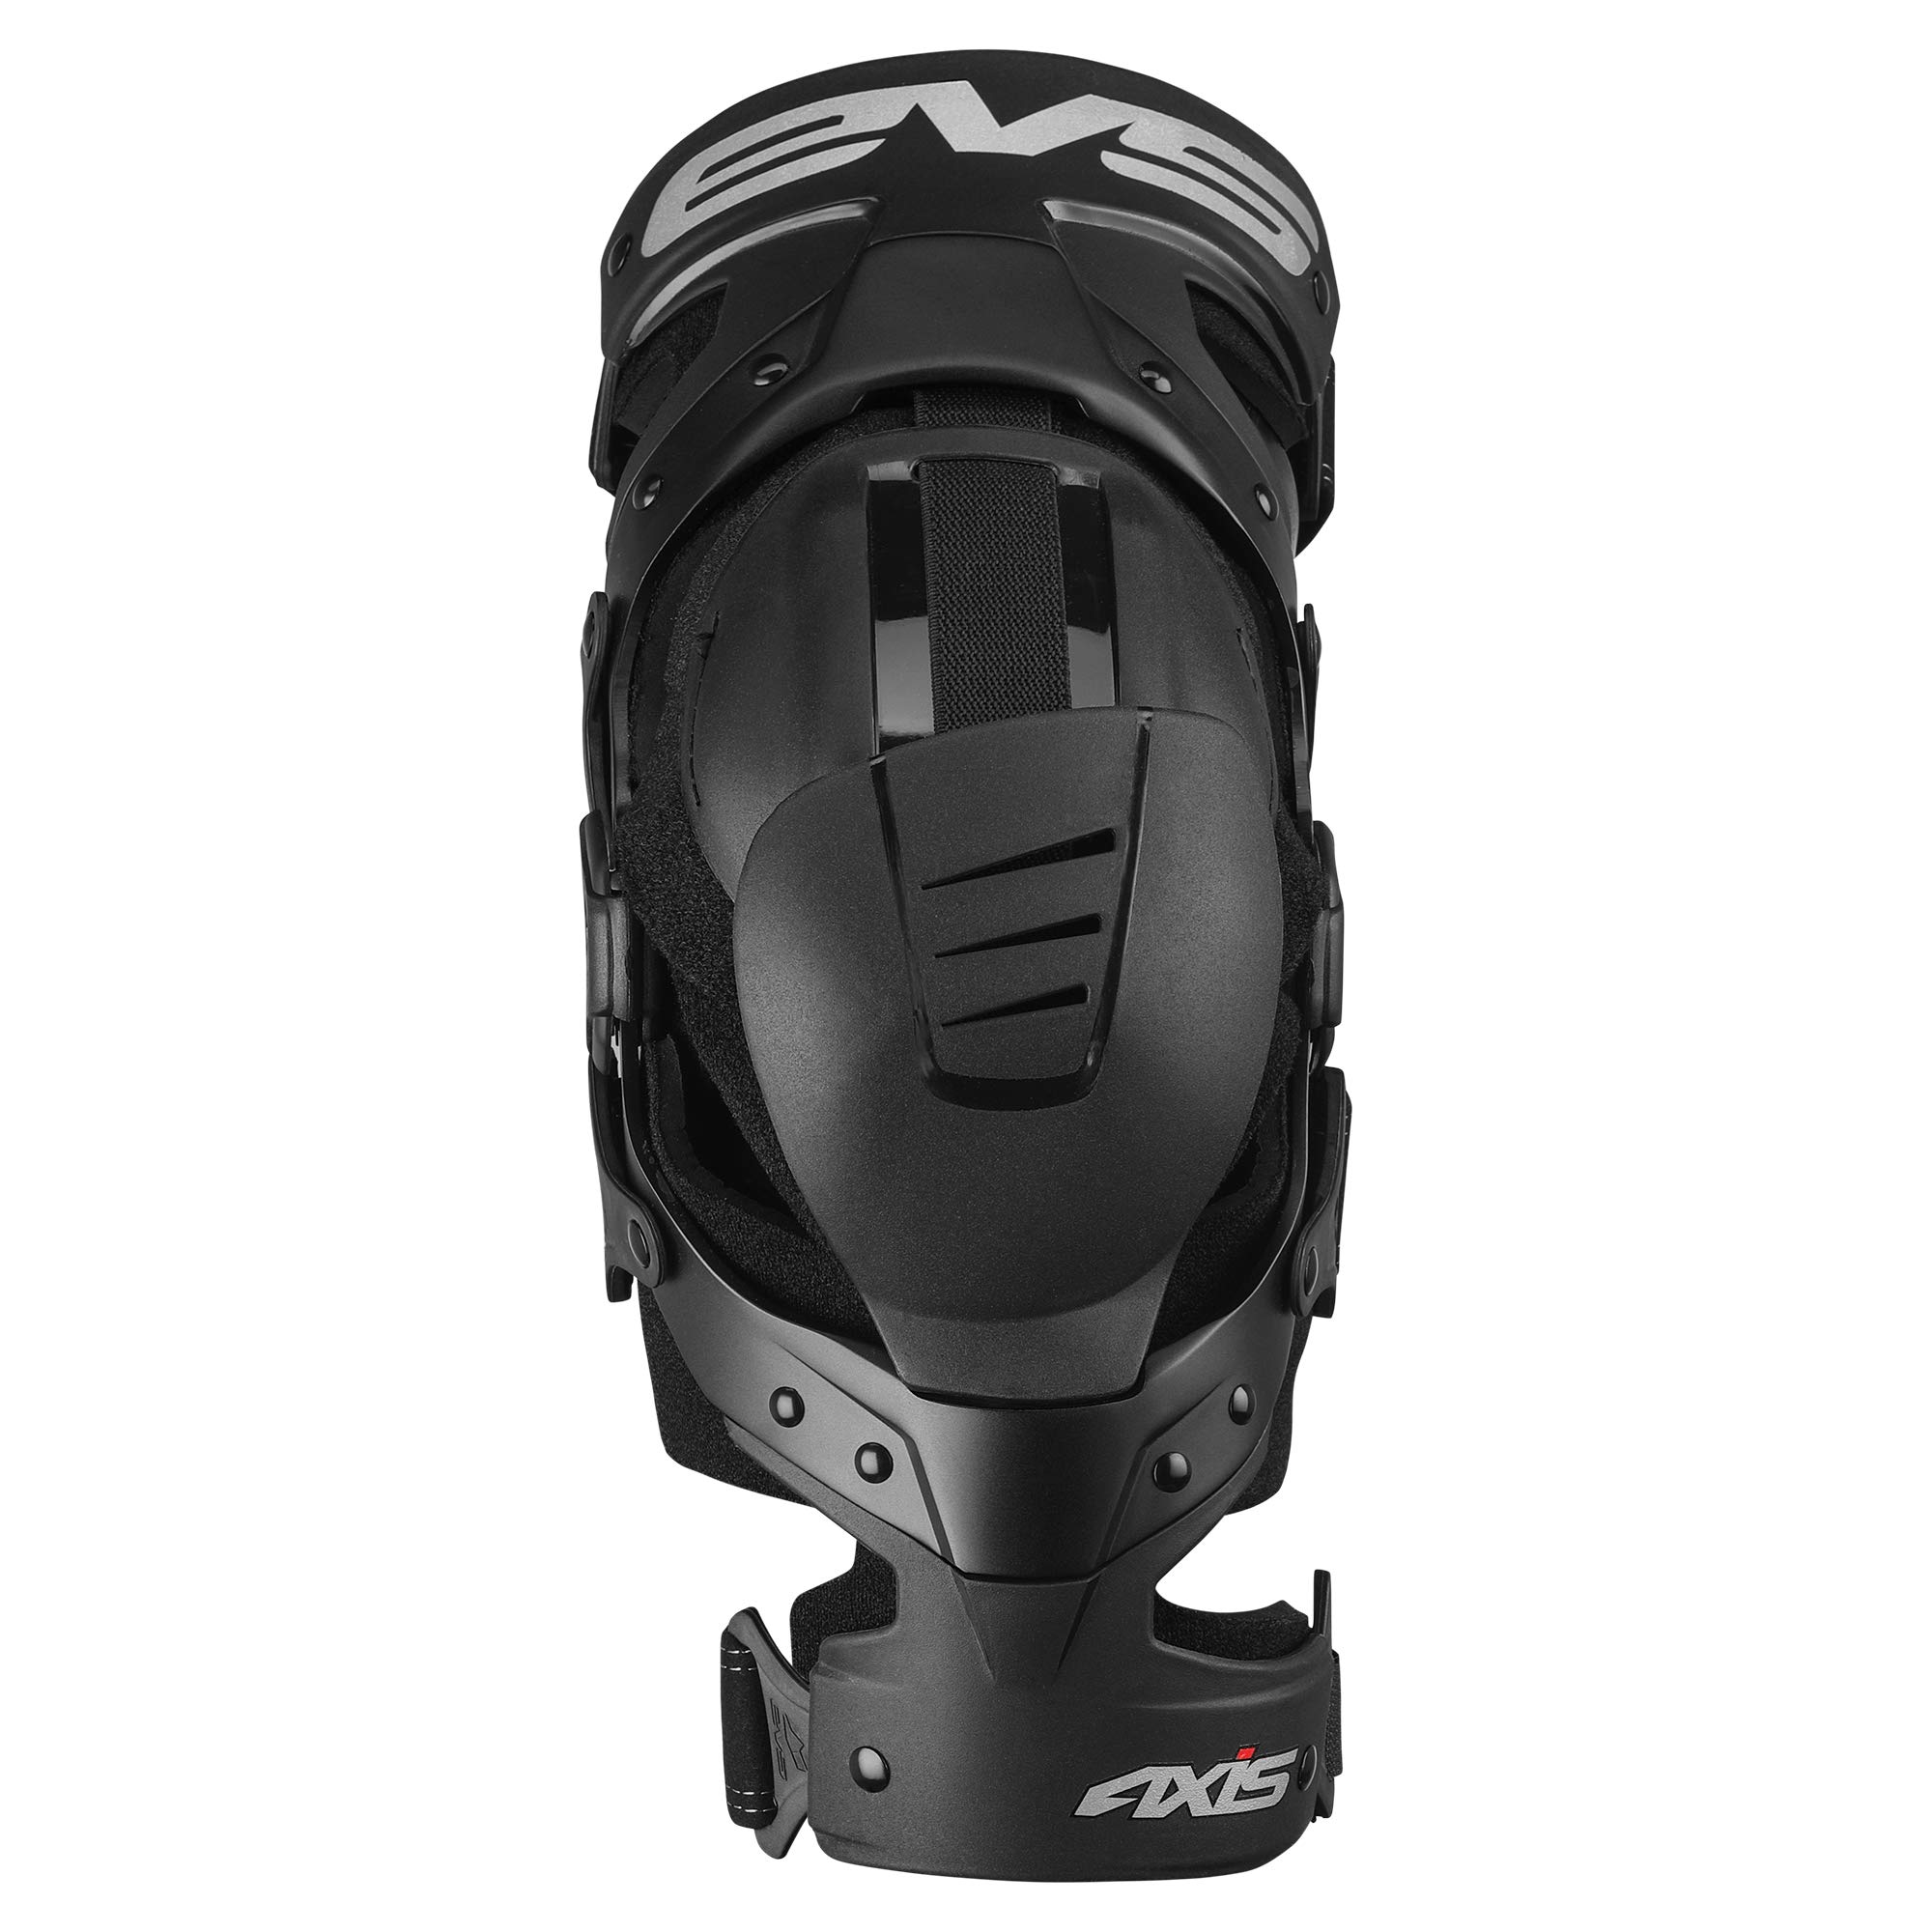 EVS Sports Unisex-Adult Axis Sport Knee Brace - Pair (Black, Large, 2 Pack by EVS Sports (Image #2)